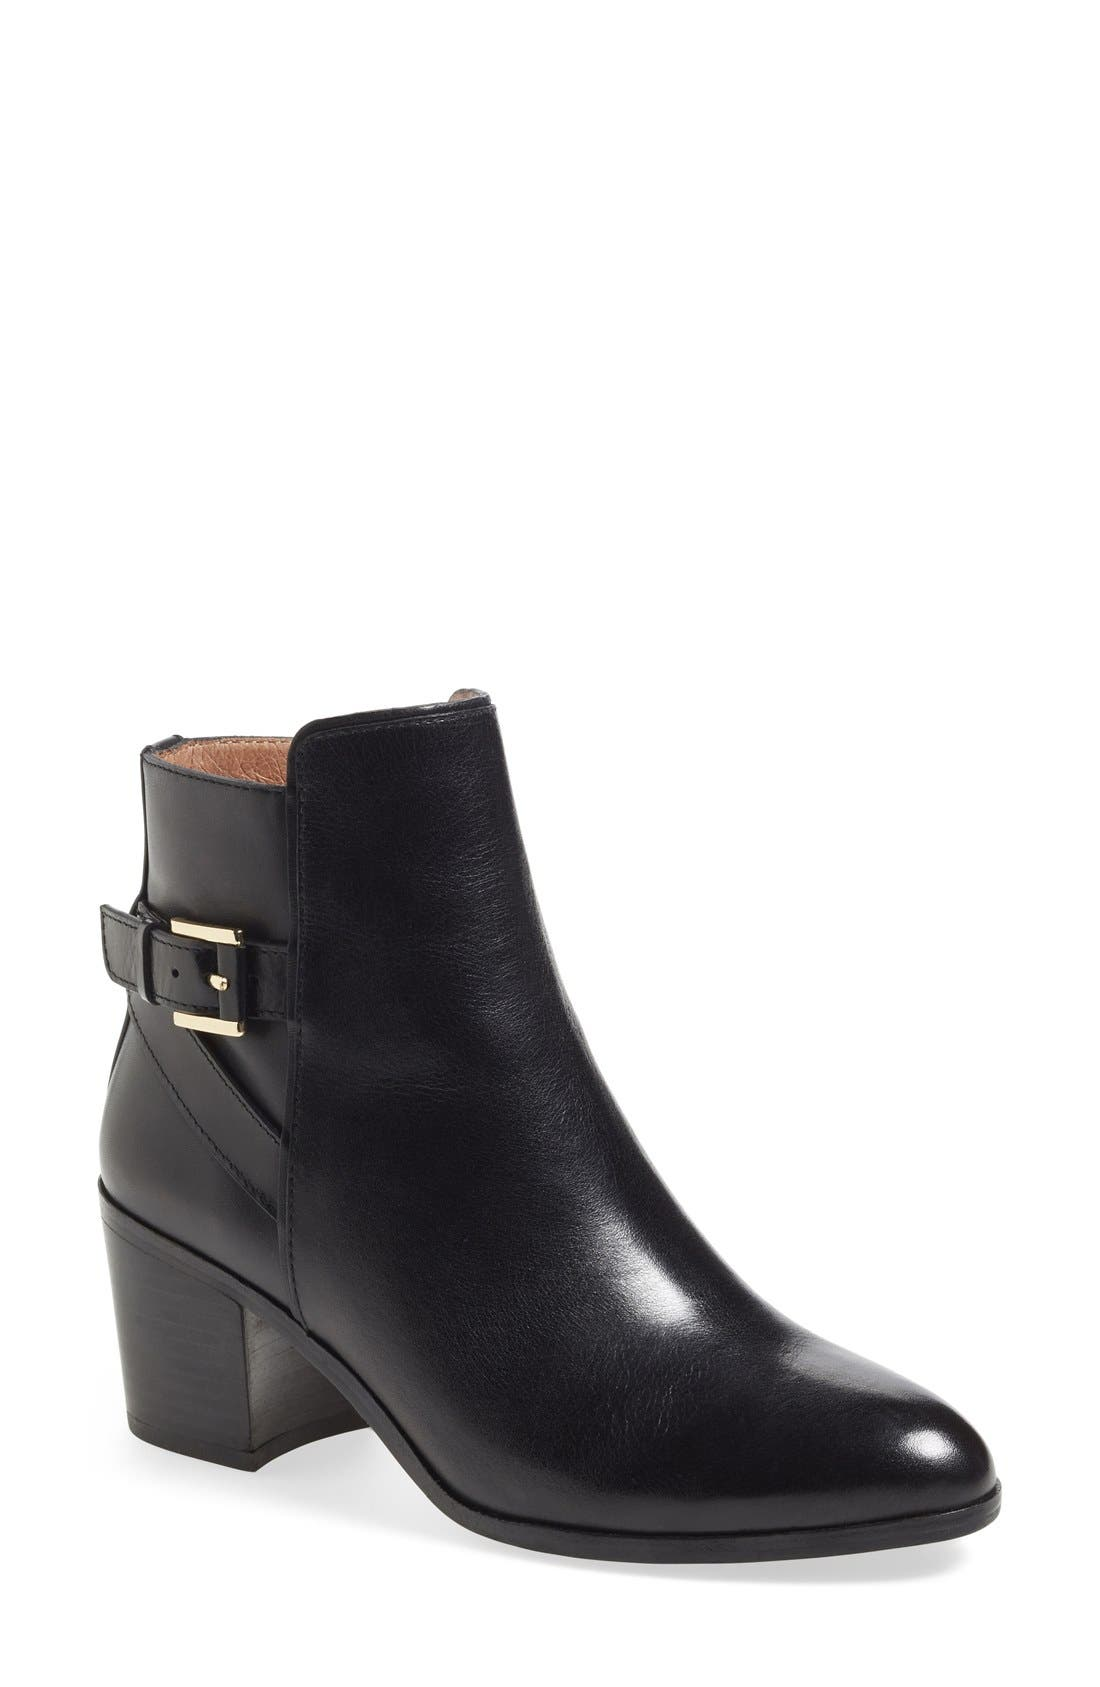 'Zalia' Ankle Bootie,                             Main thumbnail 1, color,                             001